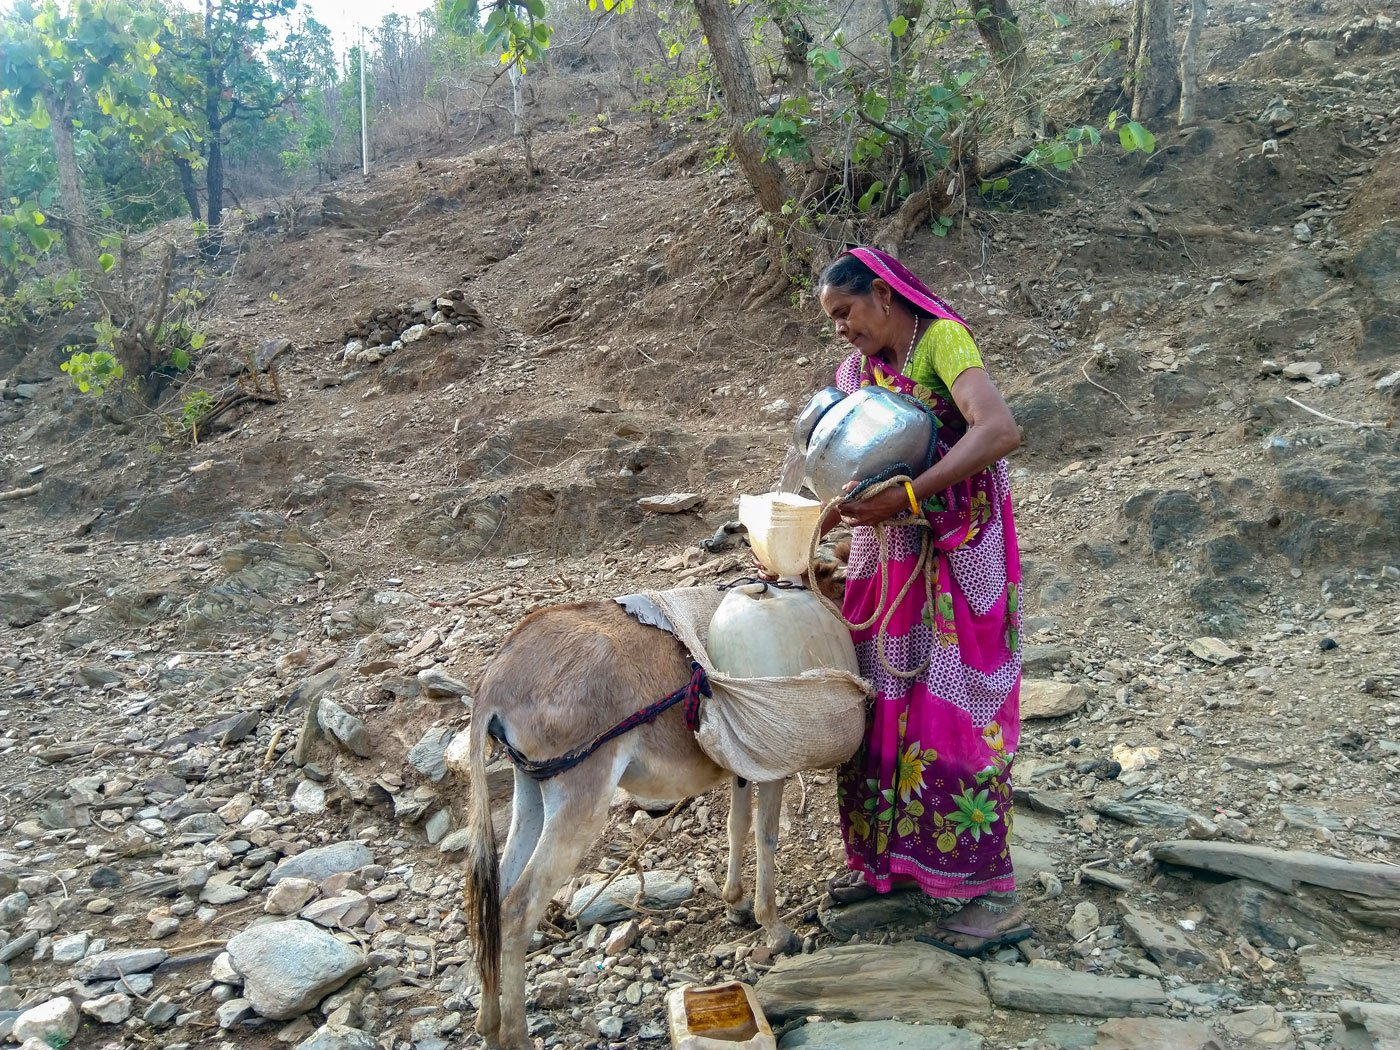 Dali Bada and her donkey. She is filling water into the cans